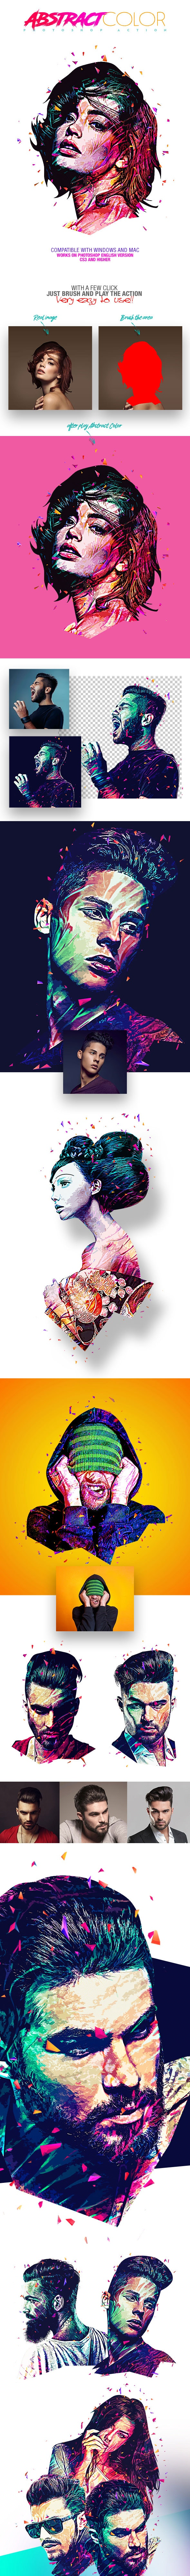 Abstract Color Photoshop Action - Photo Effects Actions